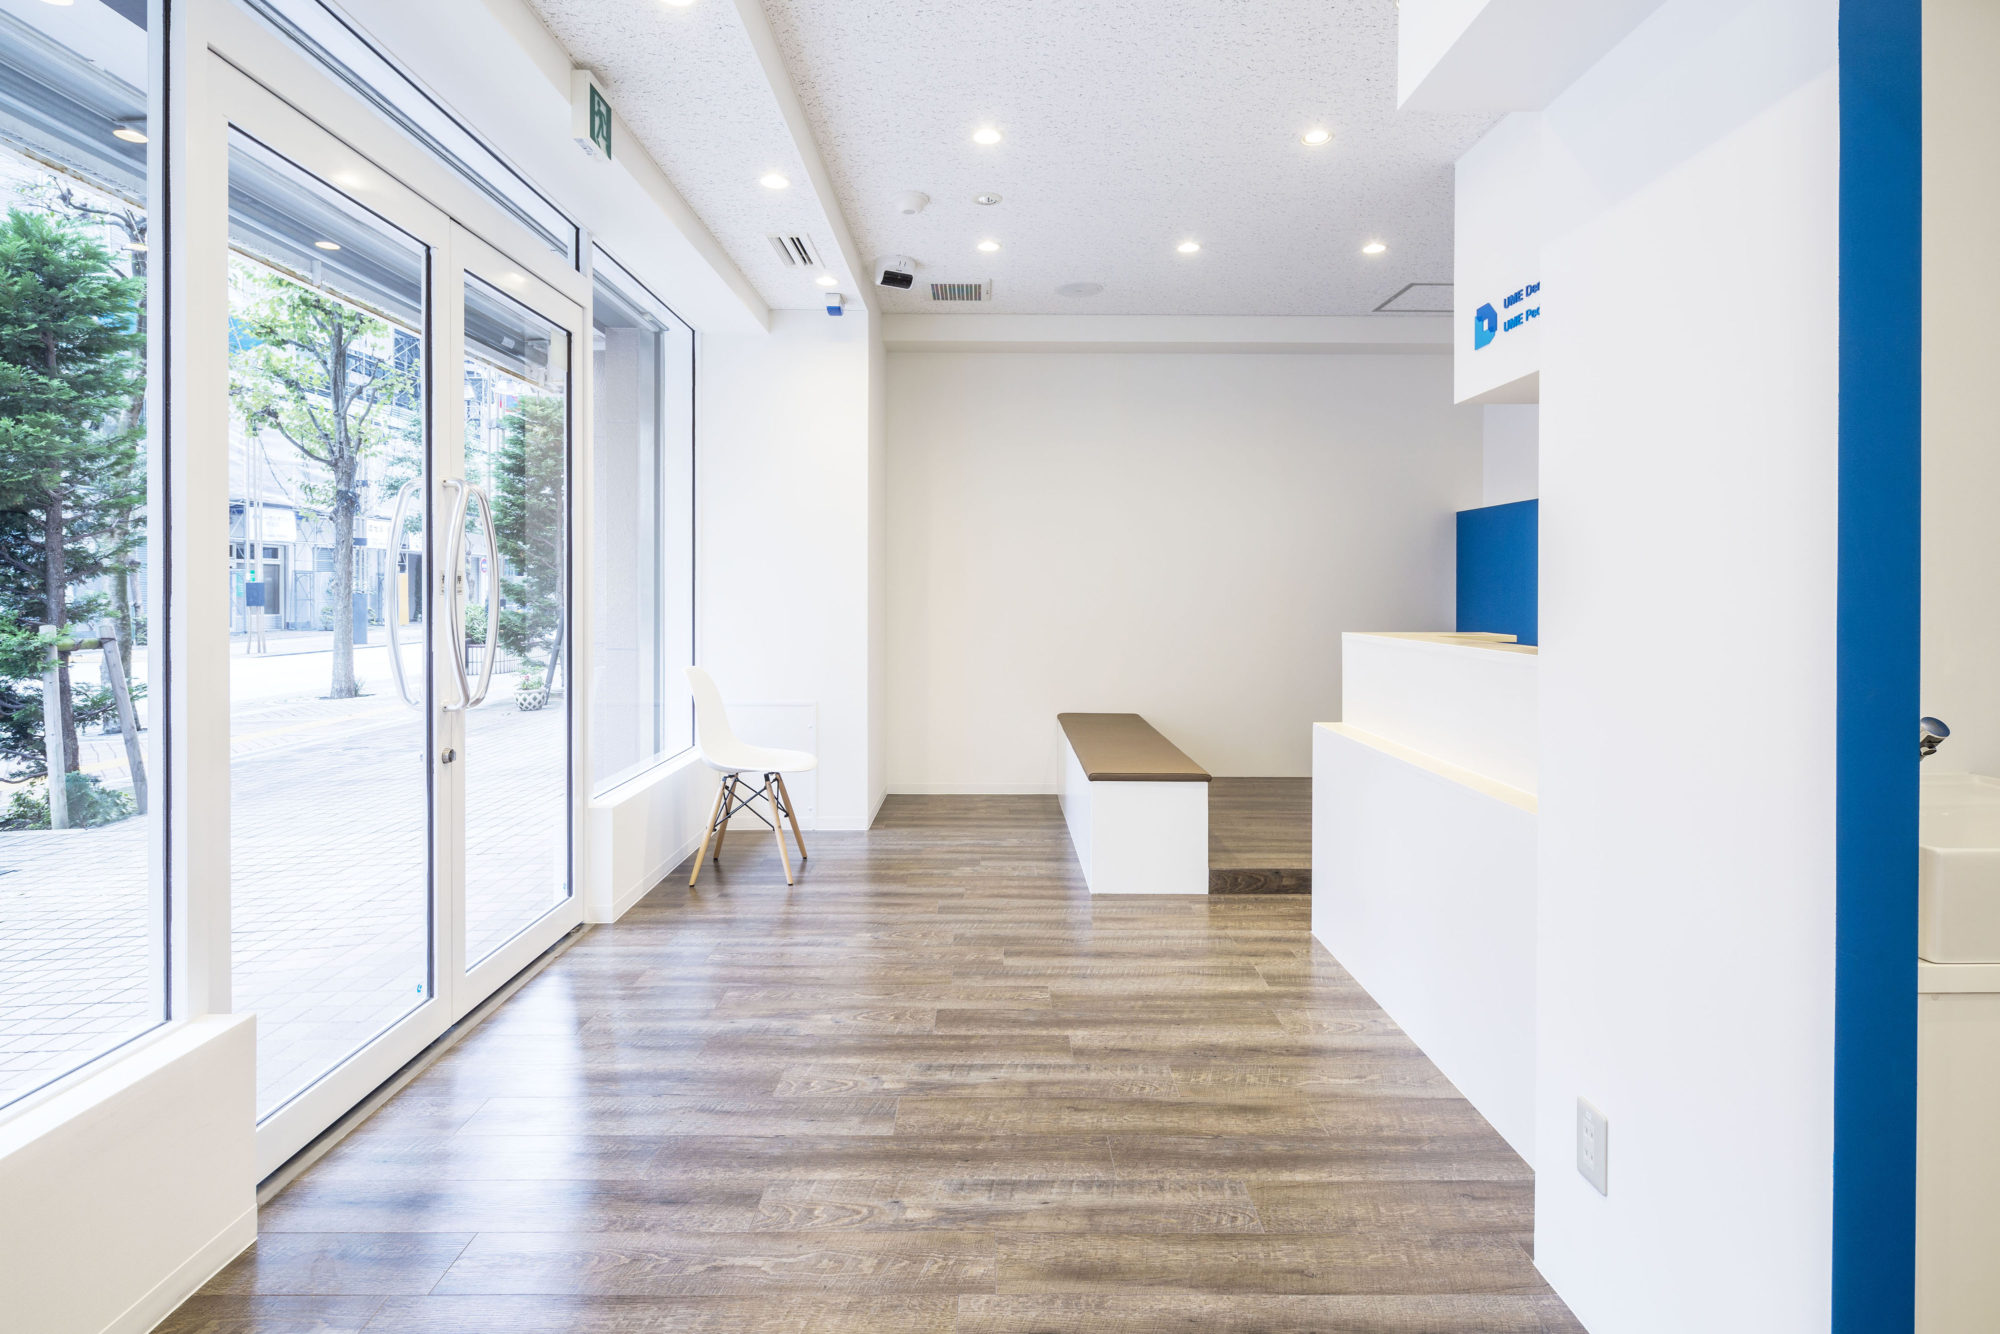 UME Dental Clinic in Fujisawa by Mosaic design